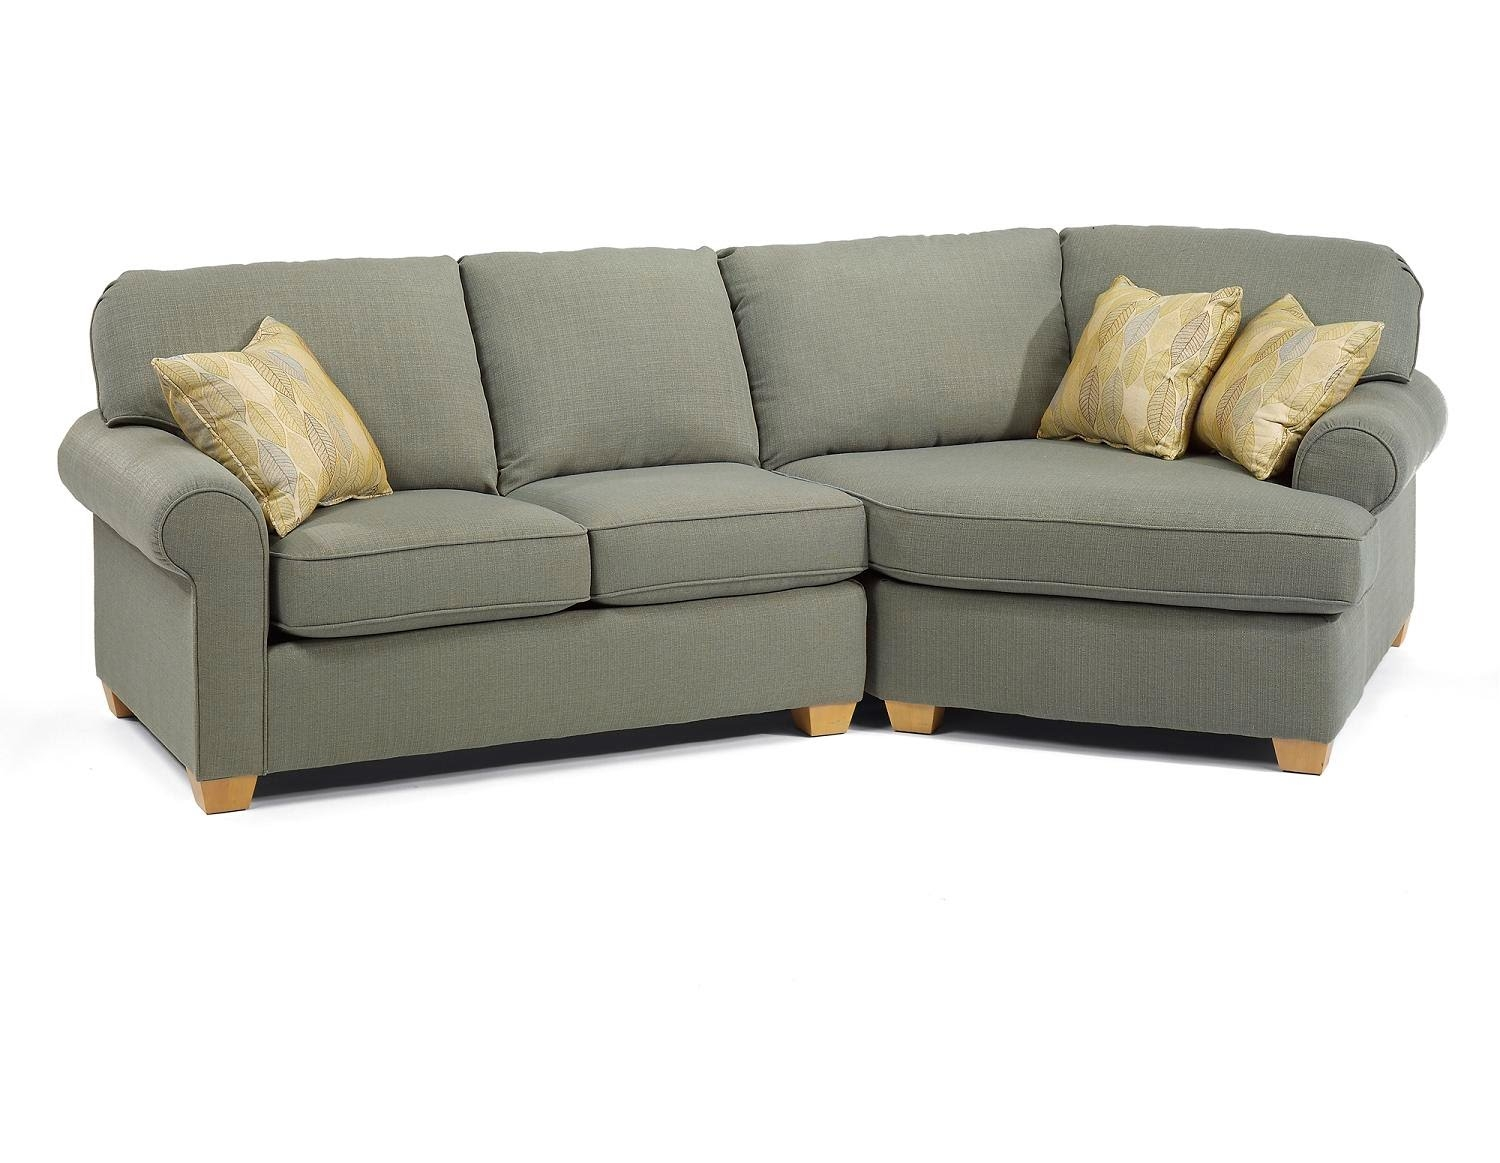 Angled Sectionals Sofas Hereo Sofa Throughout Angled Sofa Sectional (#2 of 12)